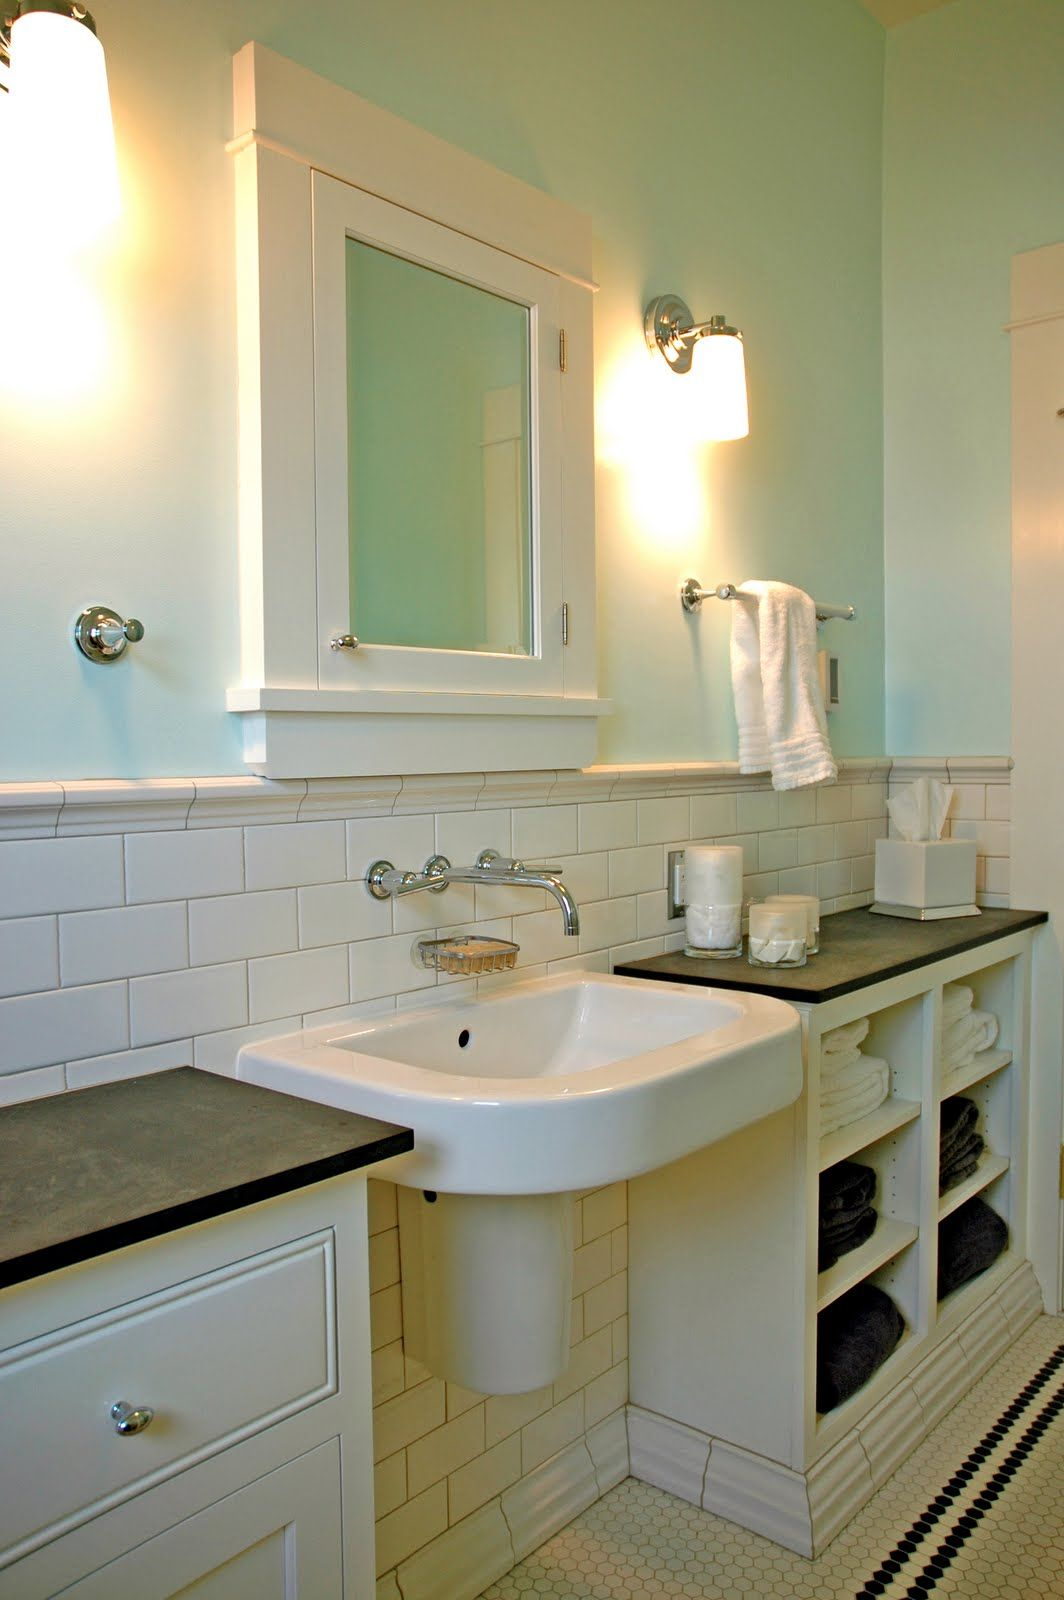 Don T Like Their Sink But I Do Like The Built In Cabinets On Either Side For Storage Small Bathroom Sink Cabinet Craftsman Bathroom Small Bathroom Sinks